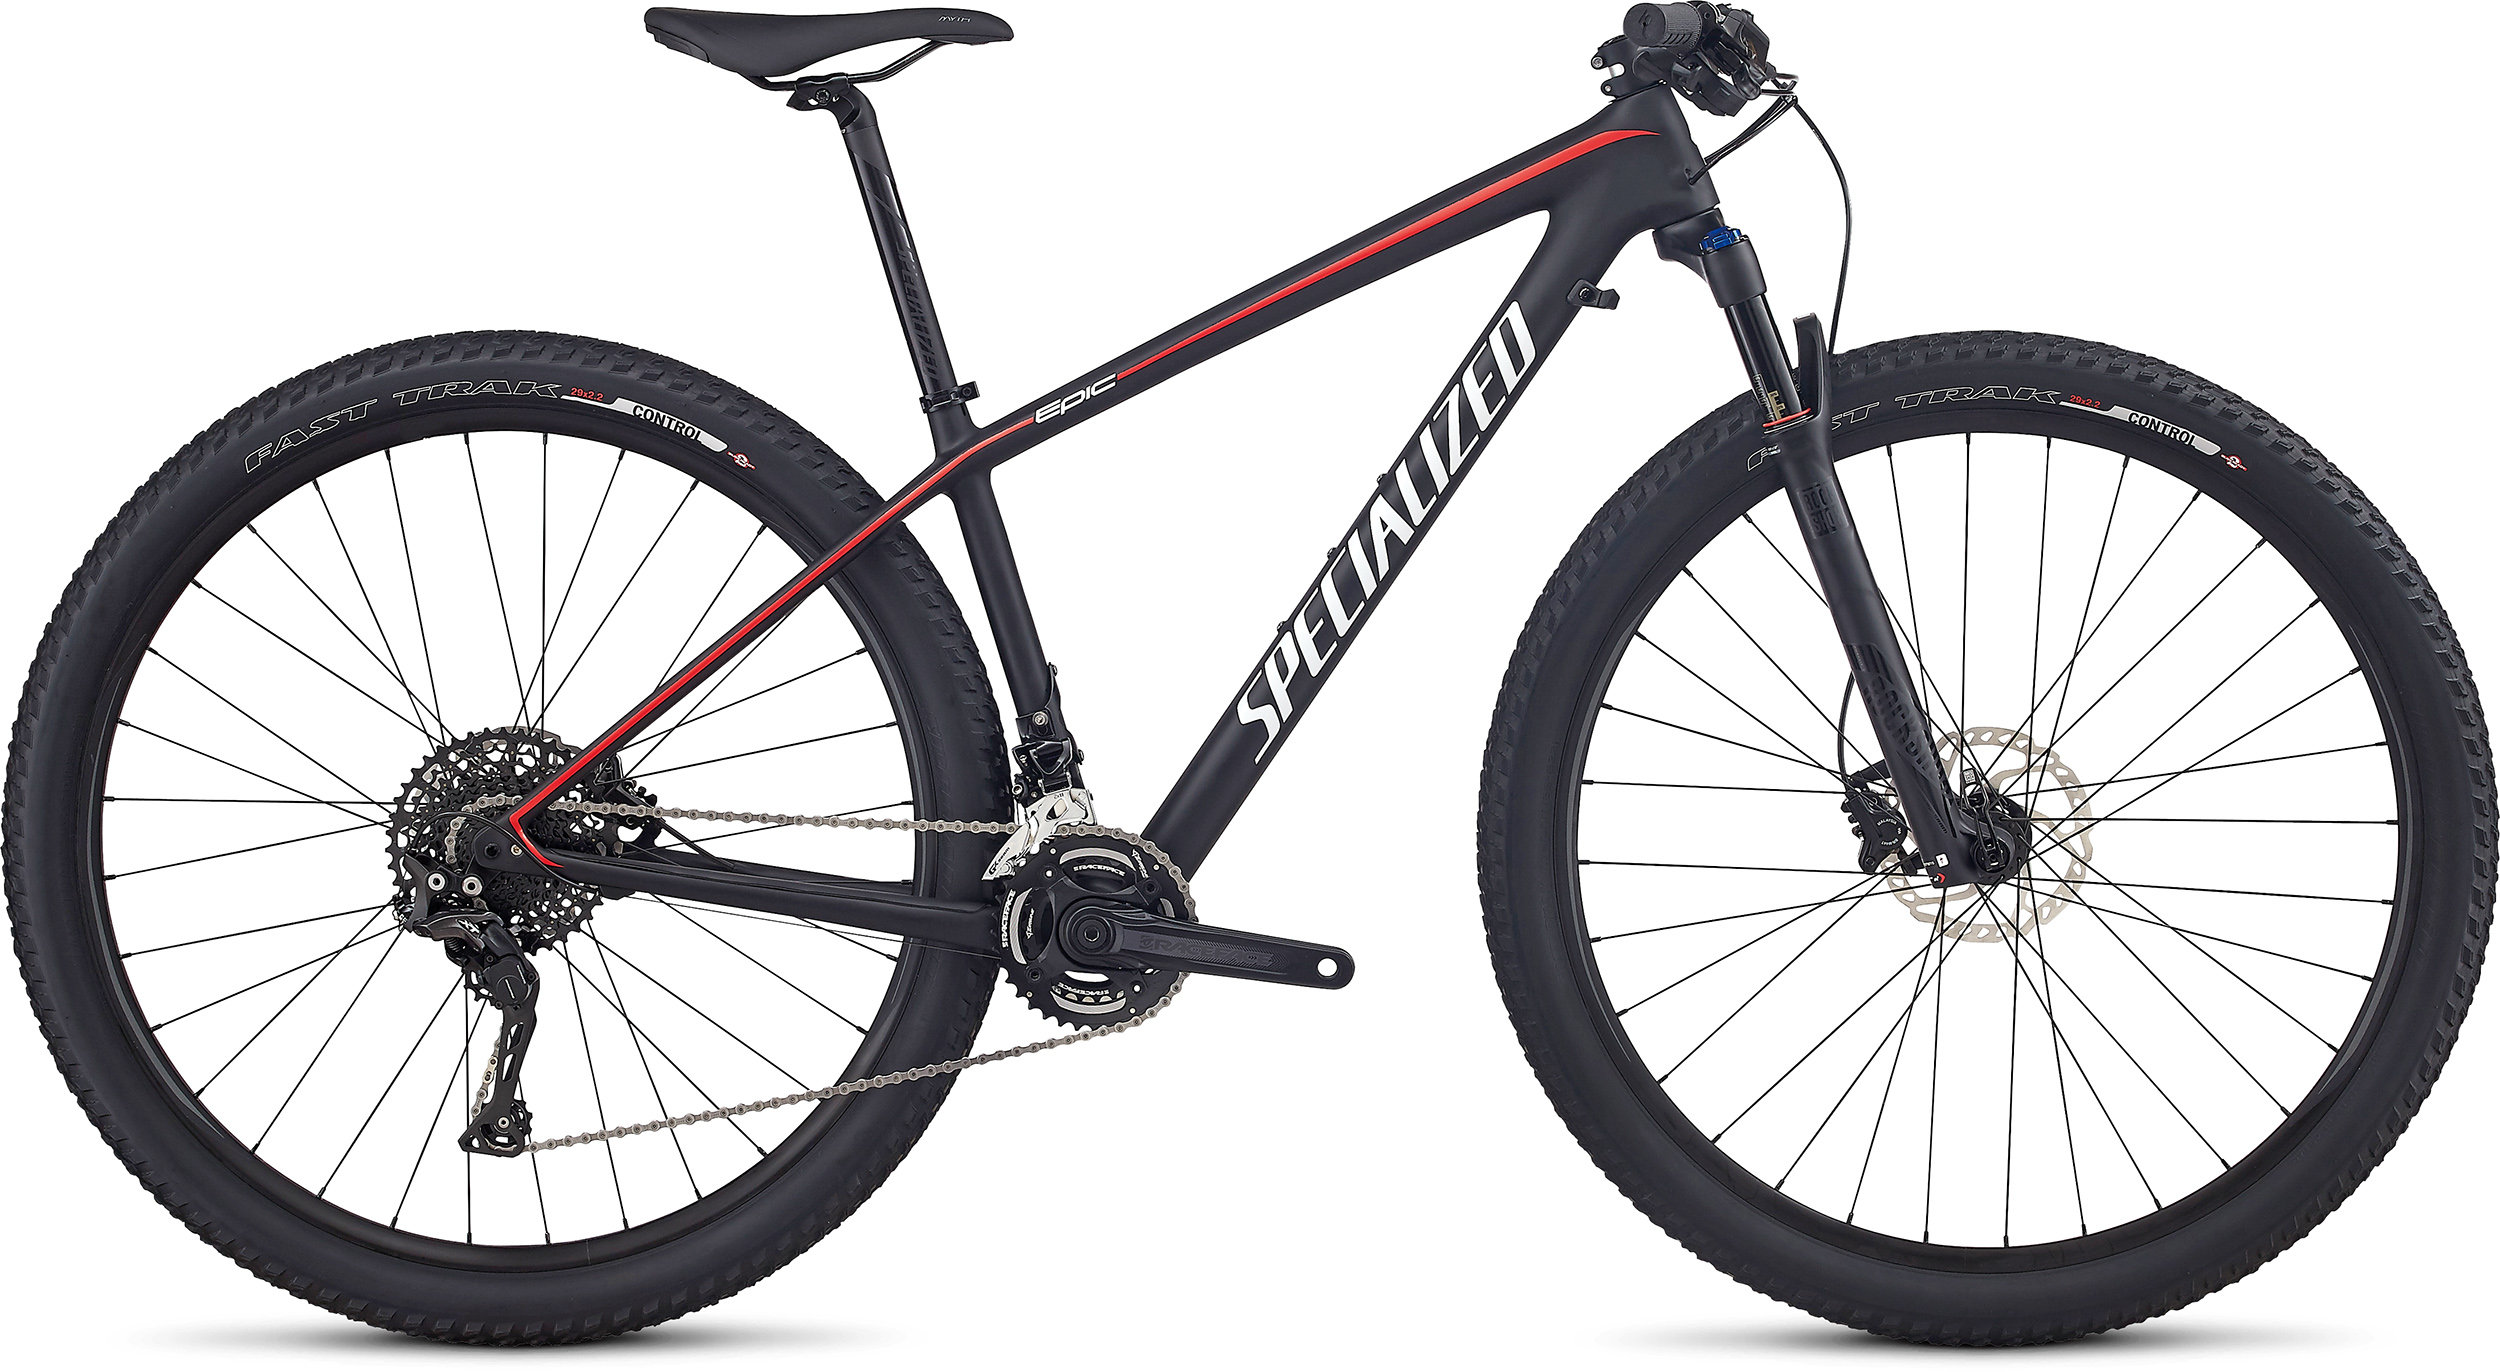 SPECIALIZED EPIC HT WMN COMP CARBON 29 TARBLK/NRDCRED/METWHTSIL L - Alpha Bikes